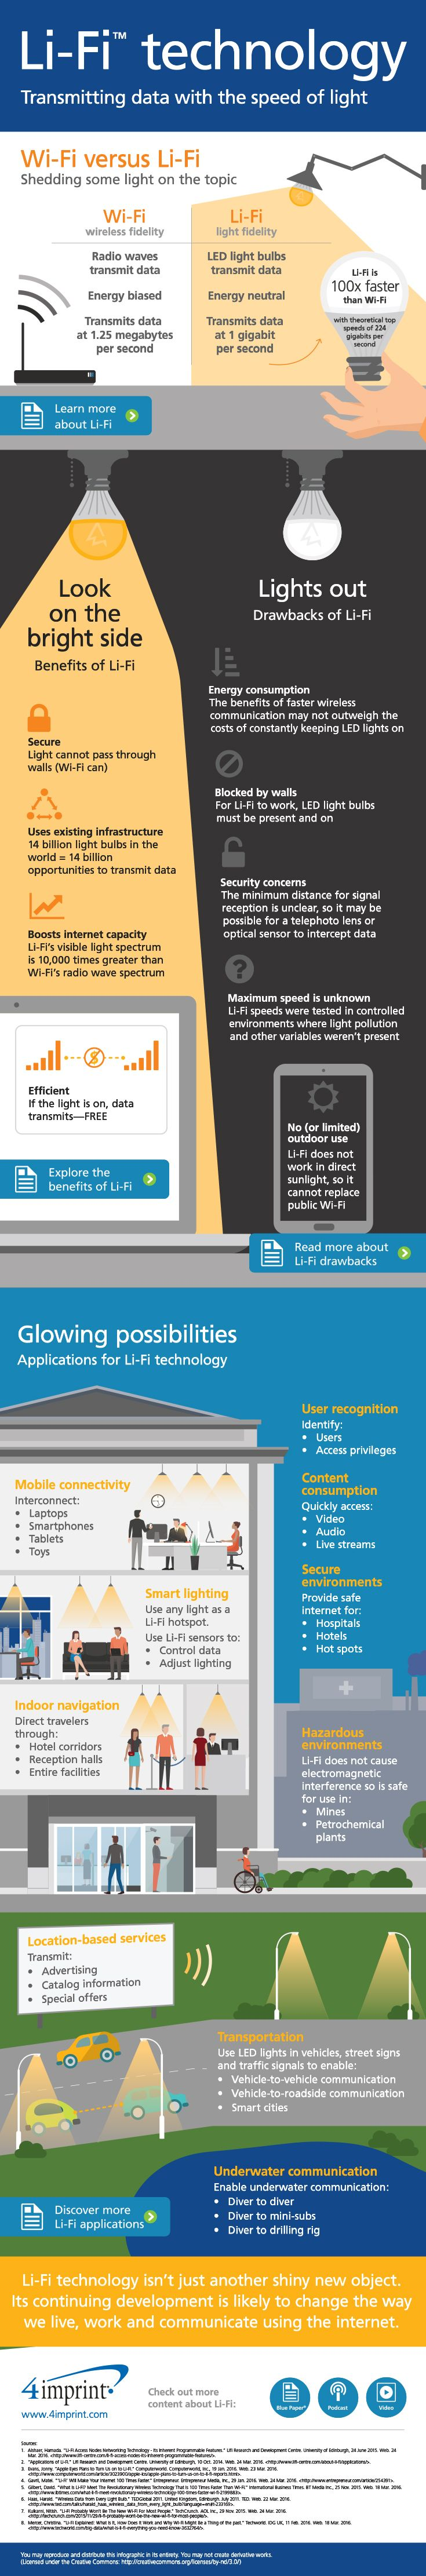 Explore Li-Fi technology, its benefits and drawbacks, and practical applications in this infographic.